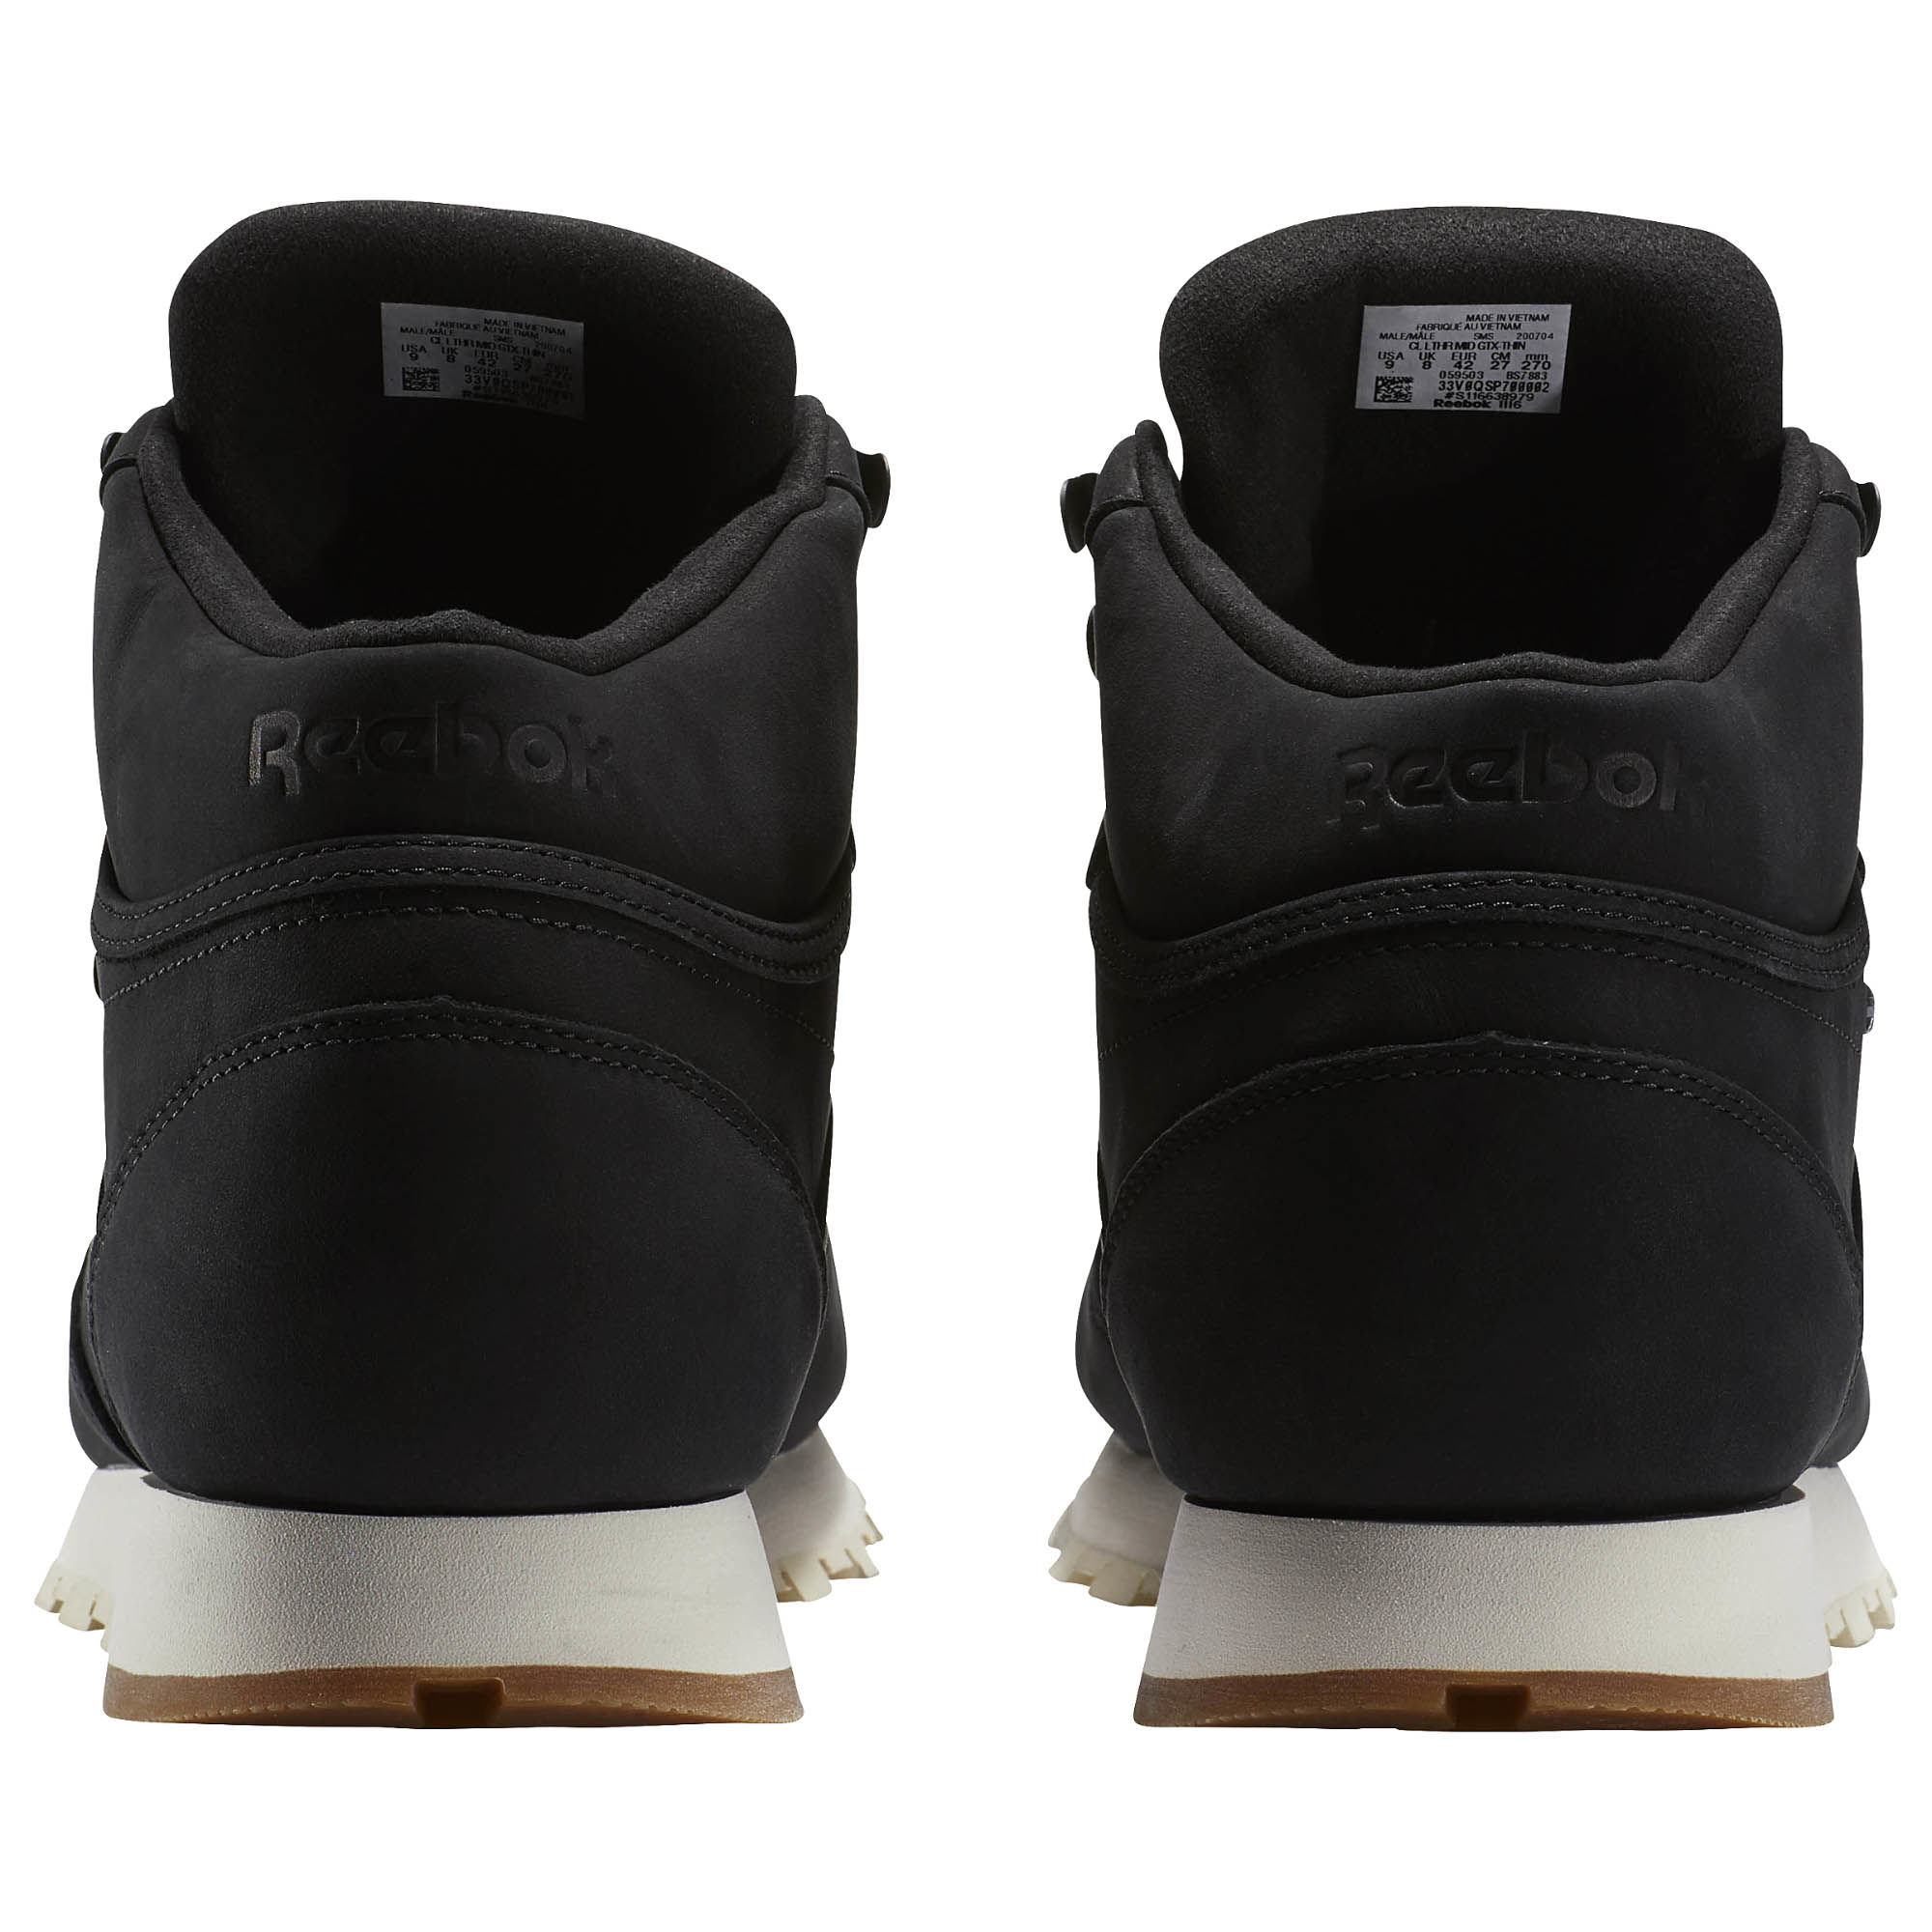 1841b12d114 ... reebok classic leather mid gore-tex thinsulate black 4 - WearTesters  best price c40d9 359f3 ...